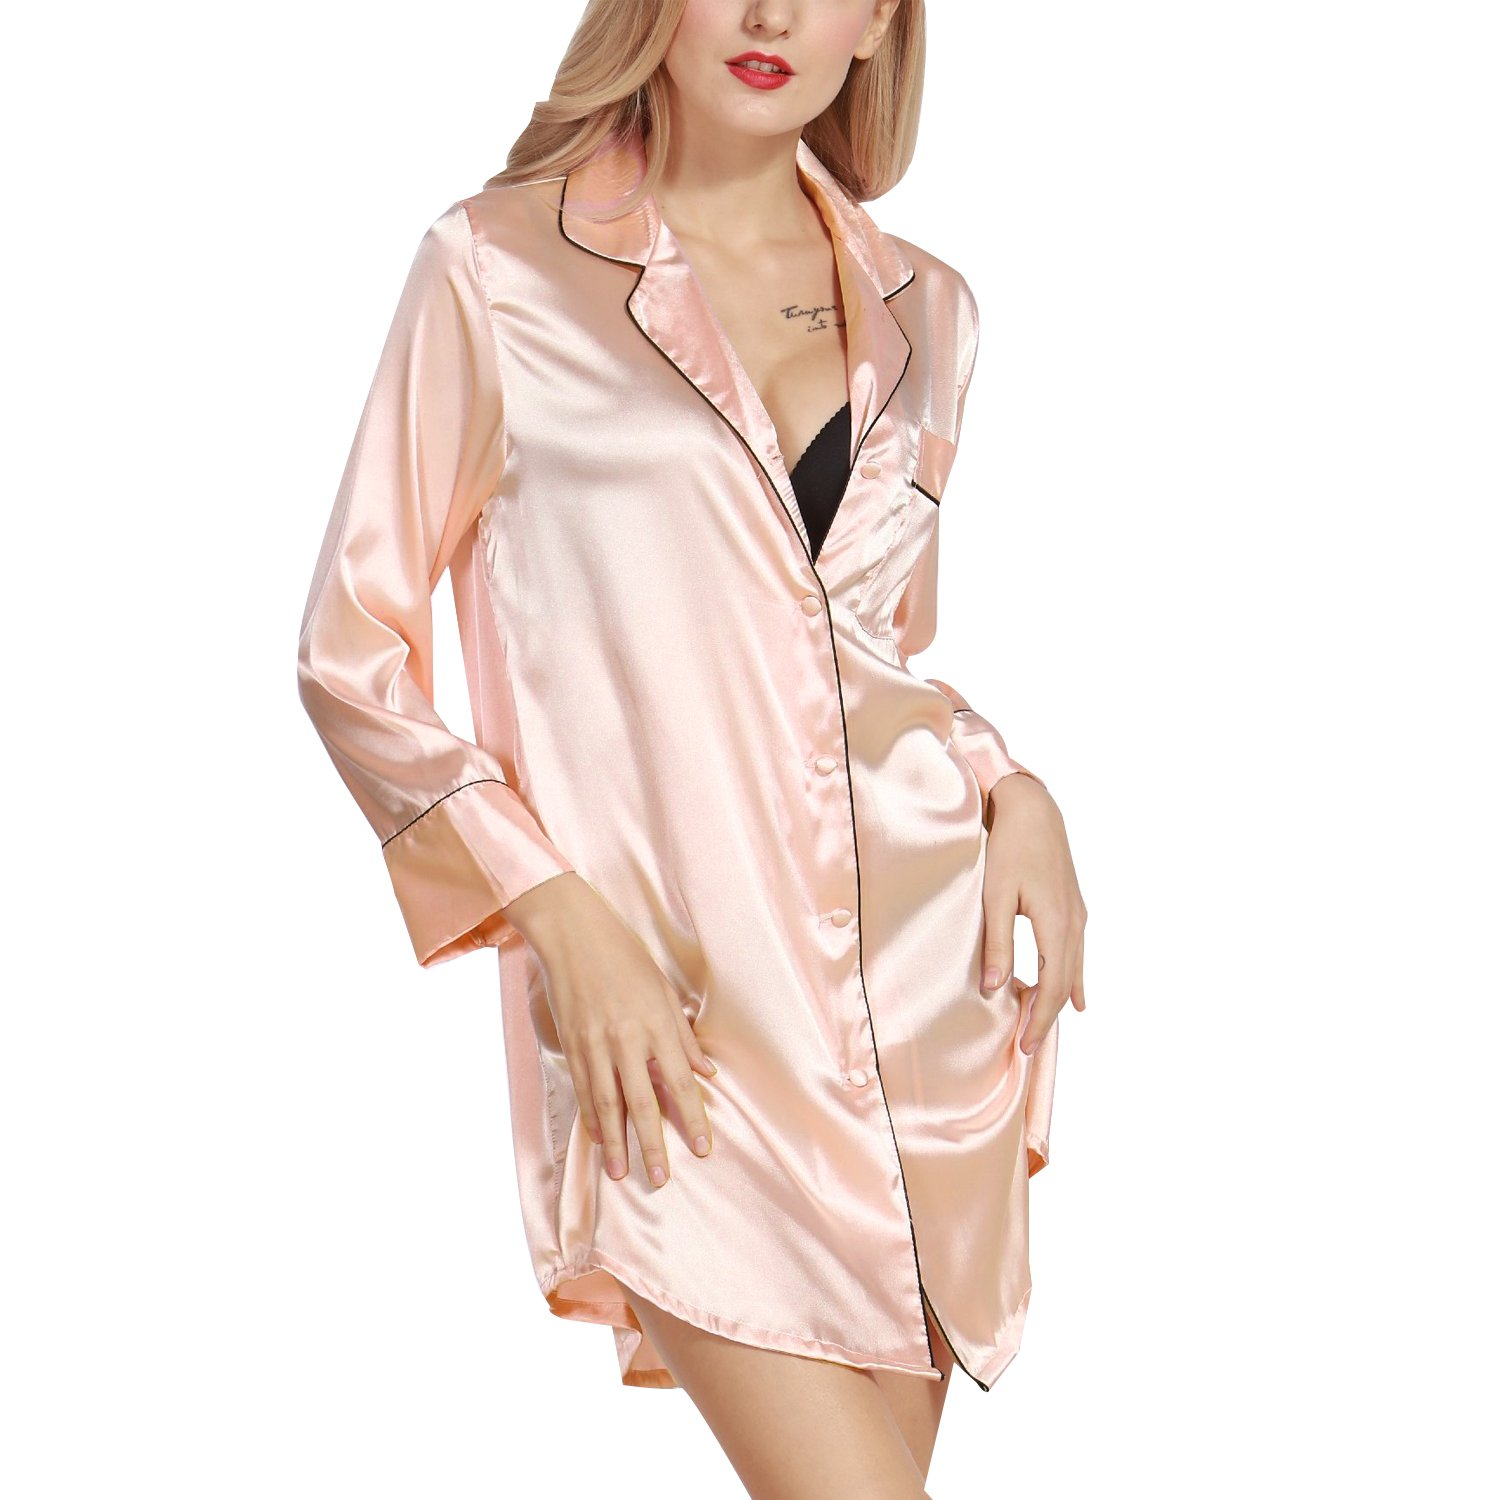 Amazon.com: Luxspire Womens Sexy Silk-Like Long Sleeve Nighty Pajamas Solid Color Nightshirts Home Wear, Pink, XL: Sports & Outdoors